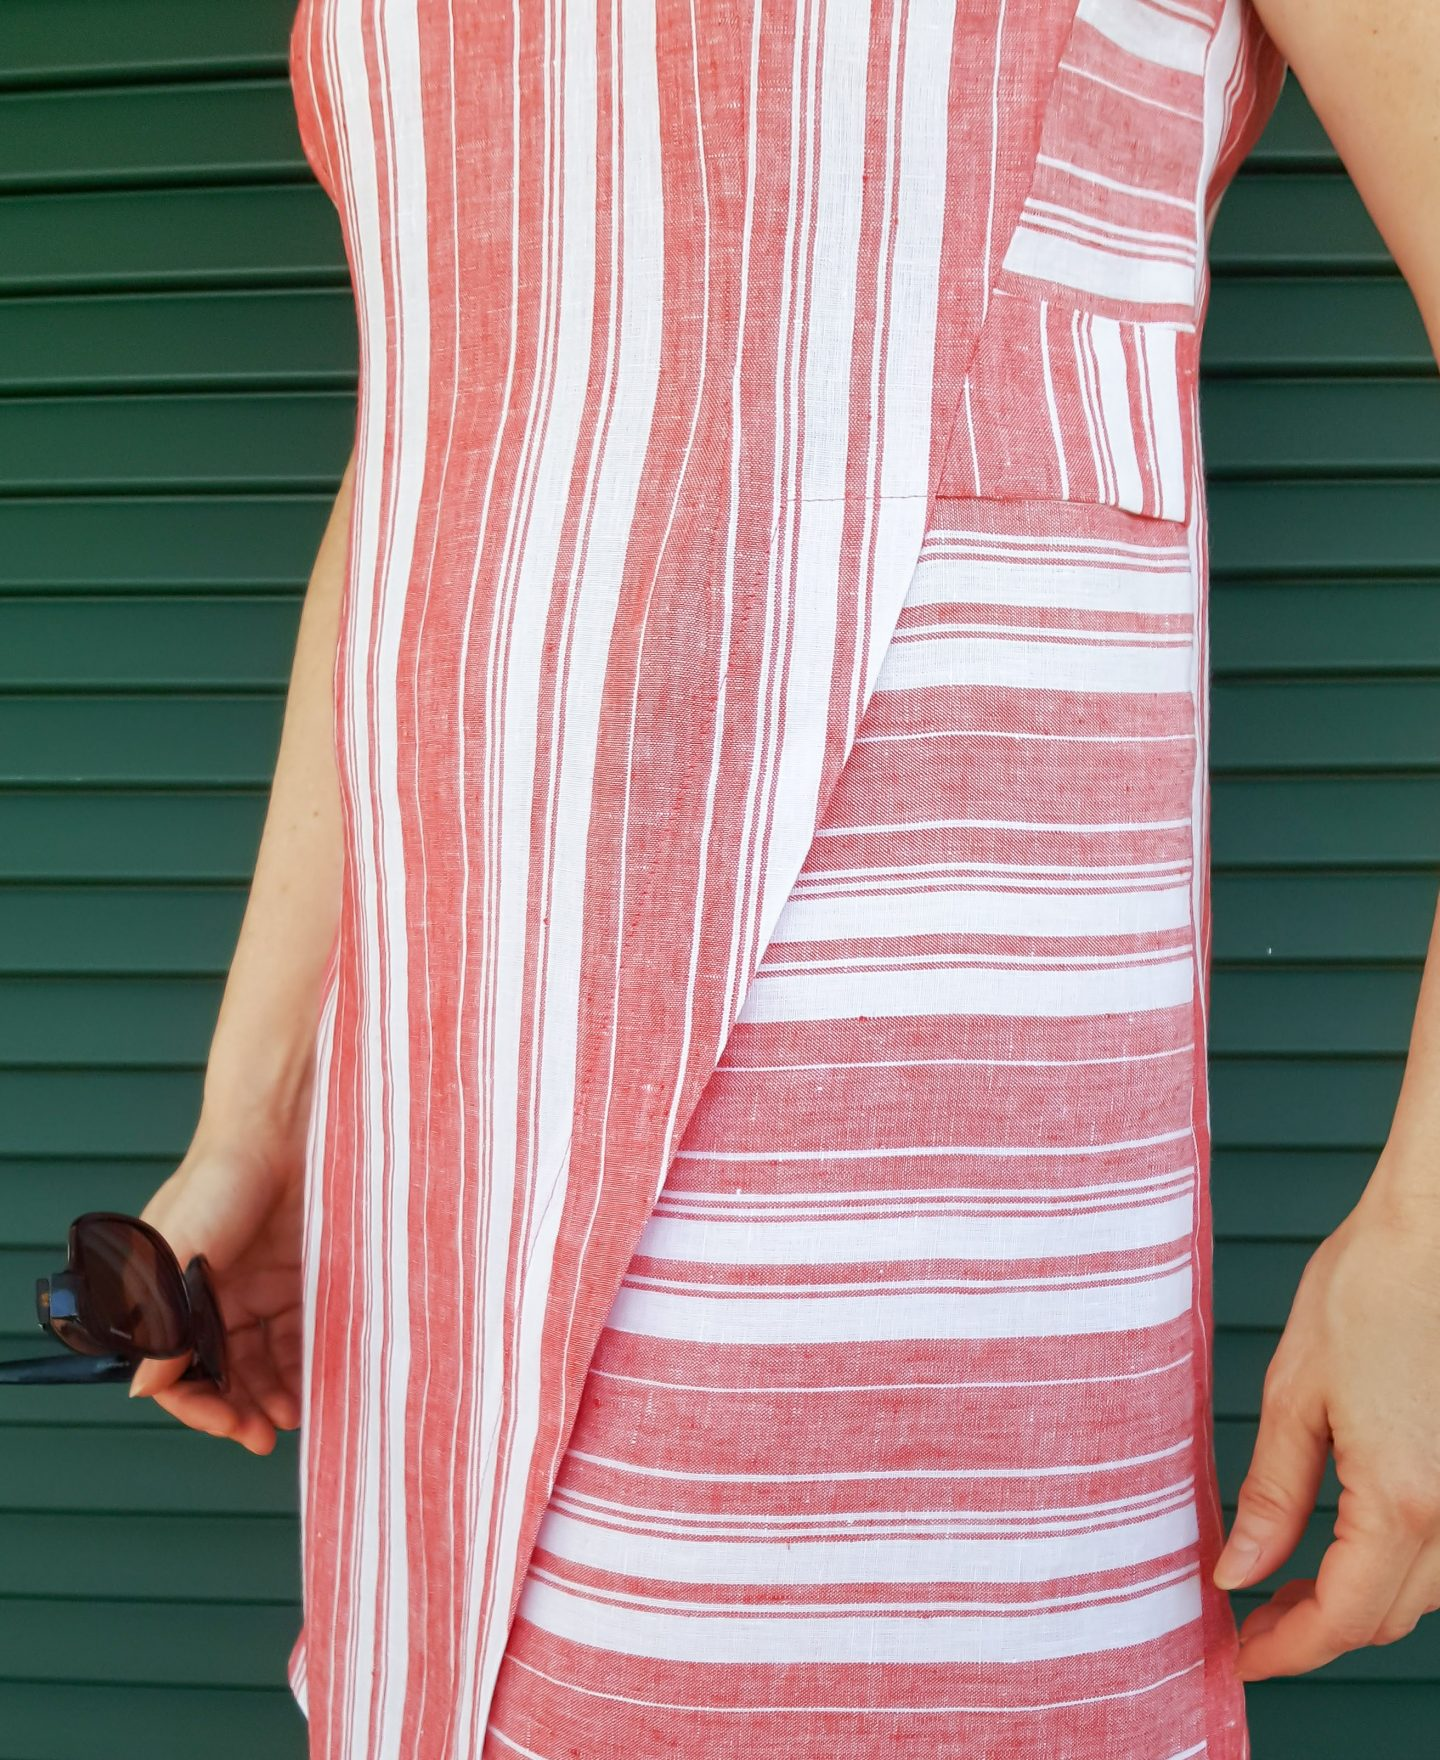 DIY Striped Dress close-up detail